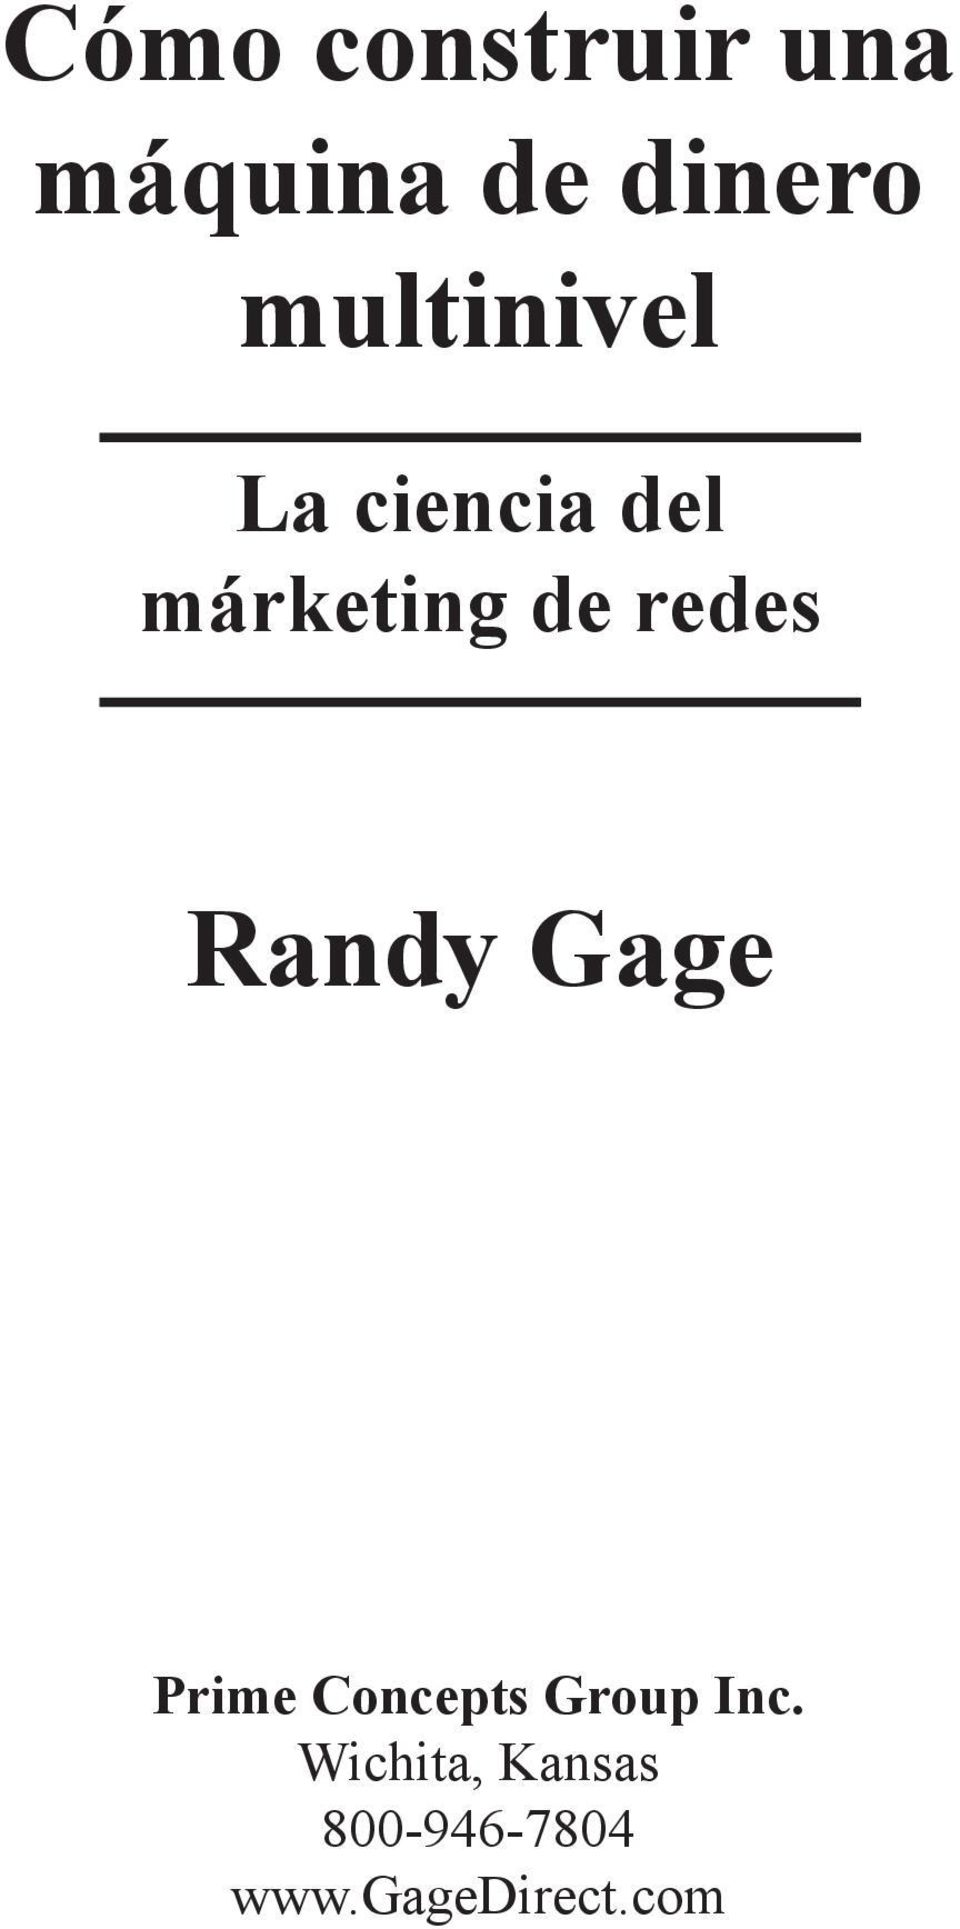 redes Randy Gage Prime Concepts Group Inc.